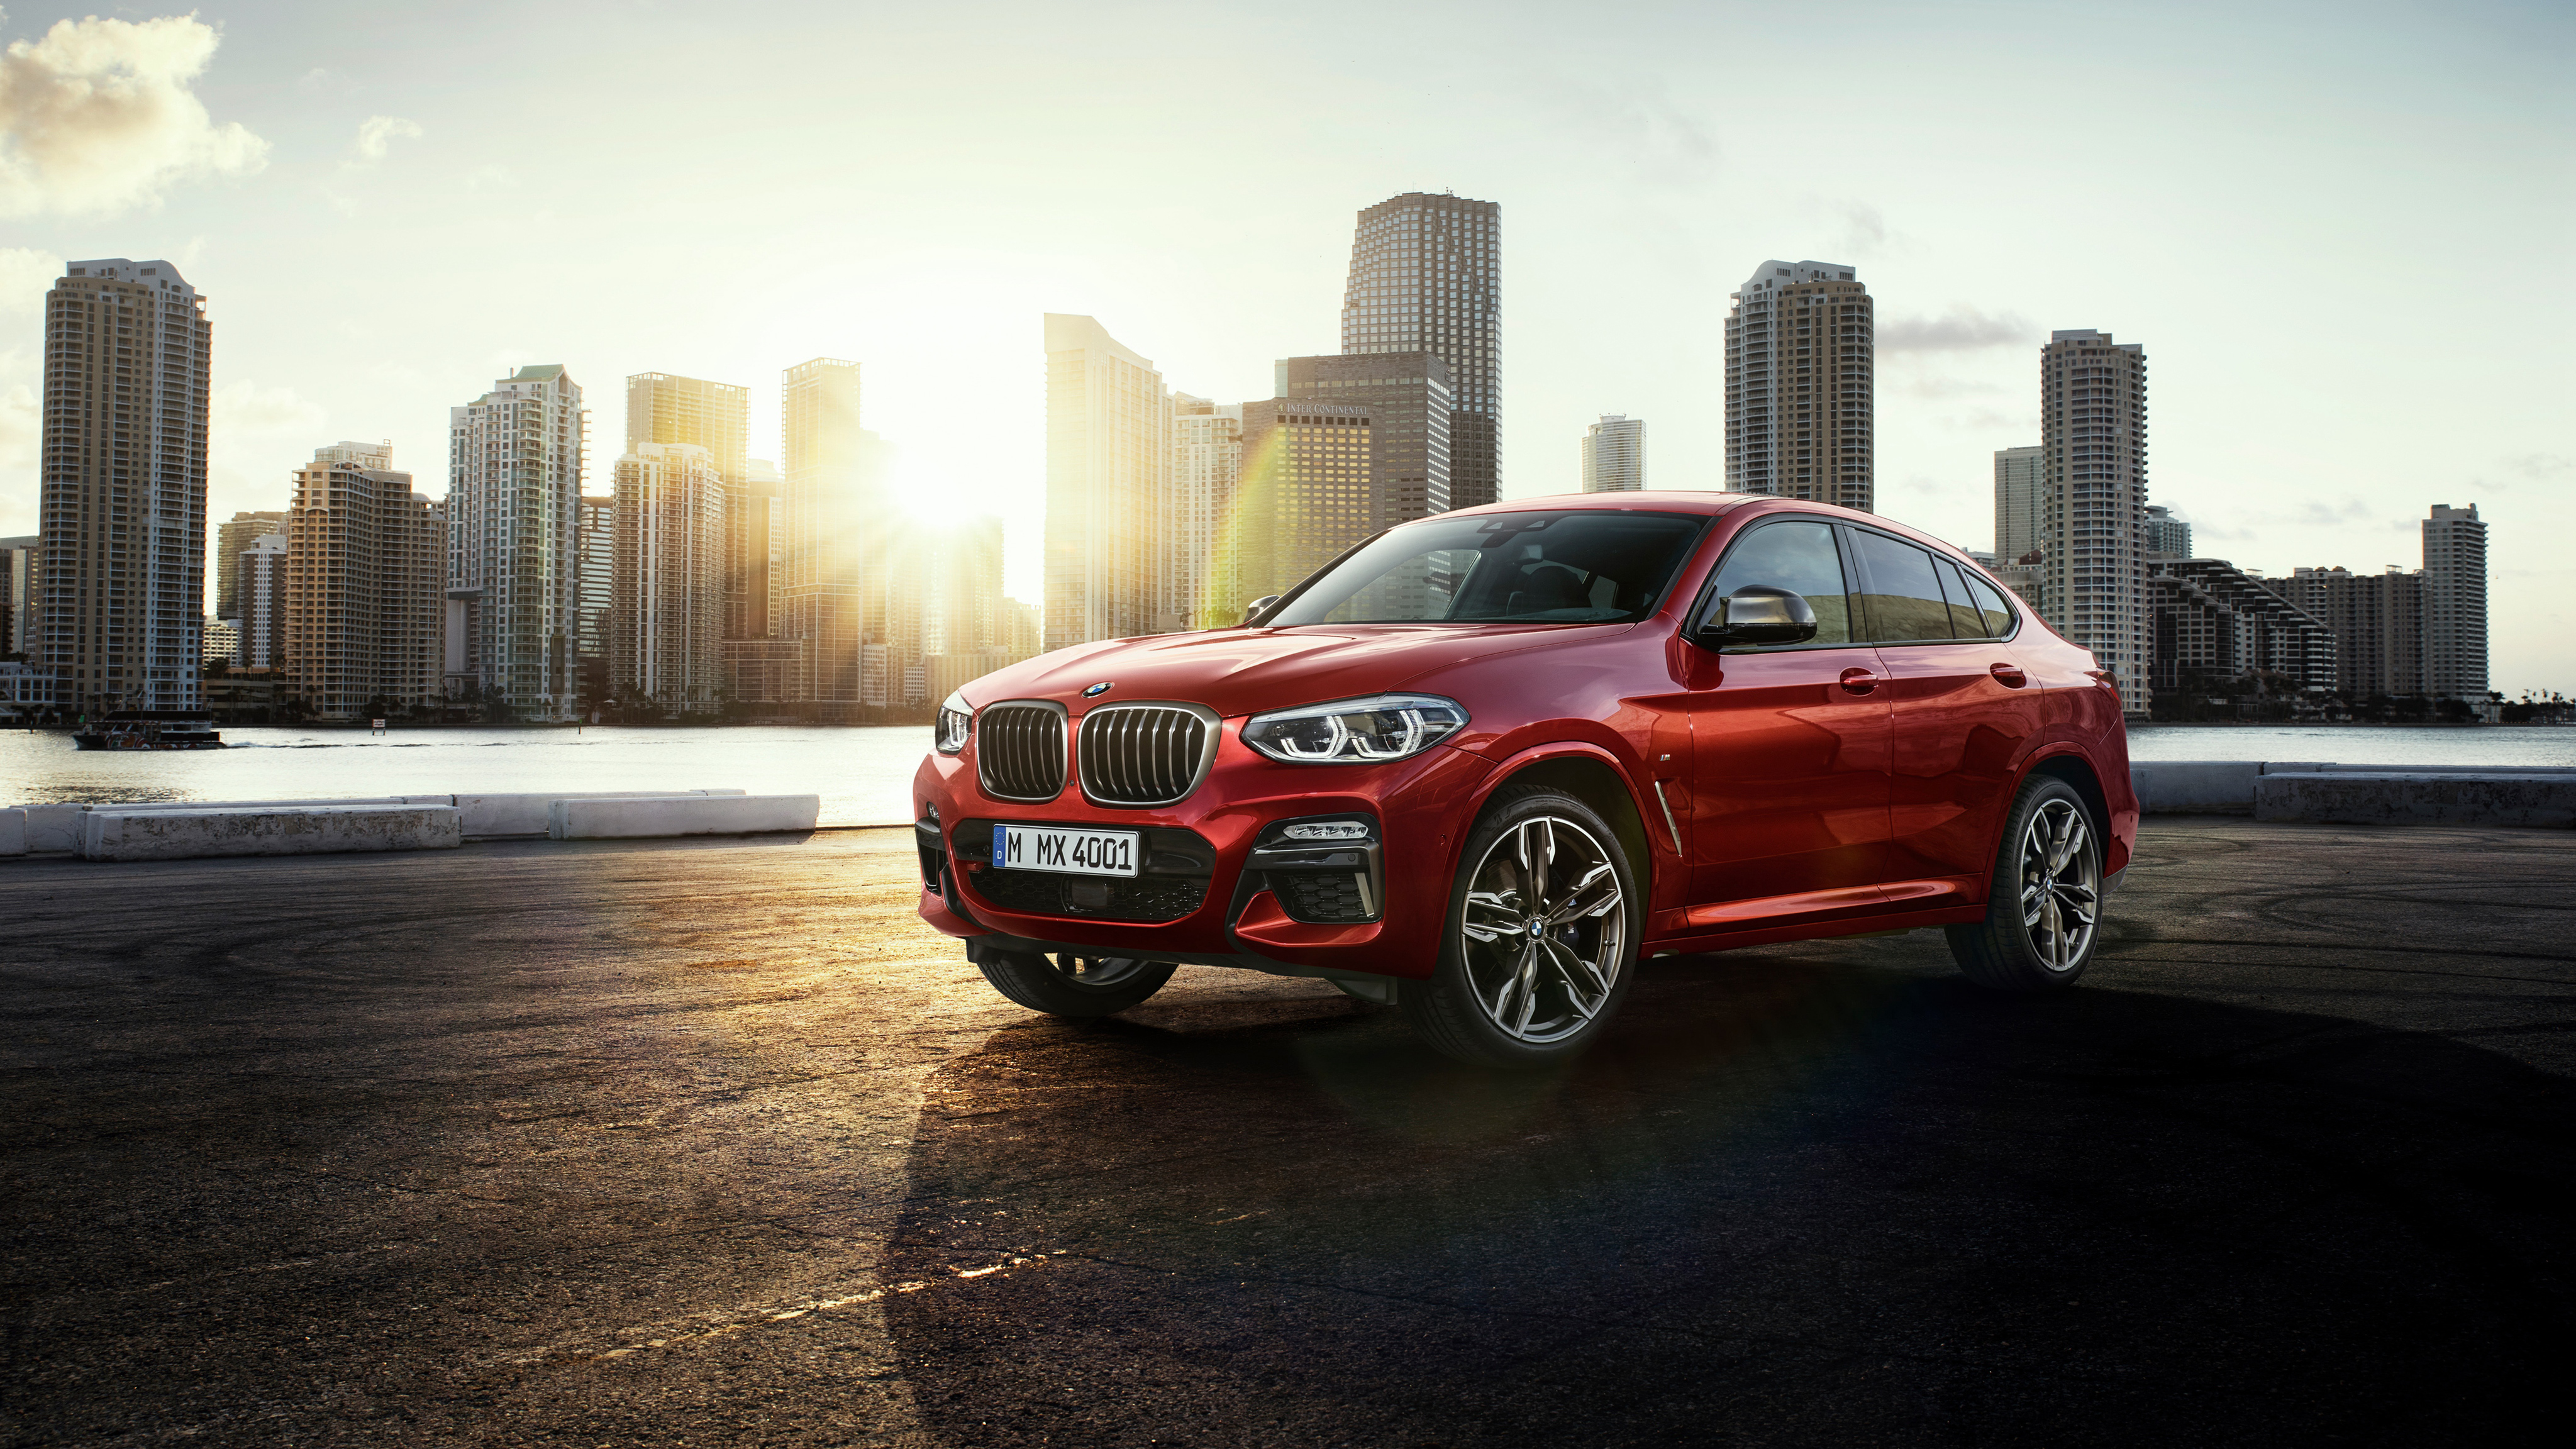 4096x2304 - BMW X4 Wallpapers 1